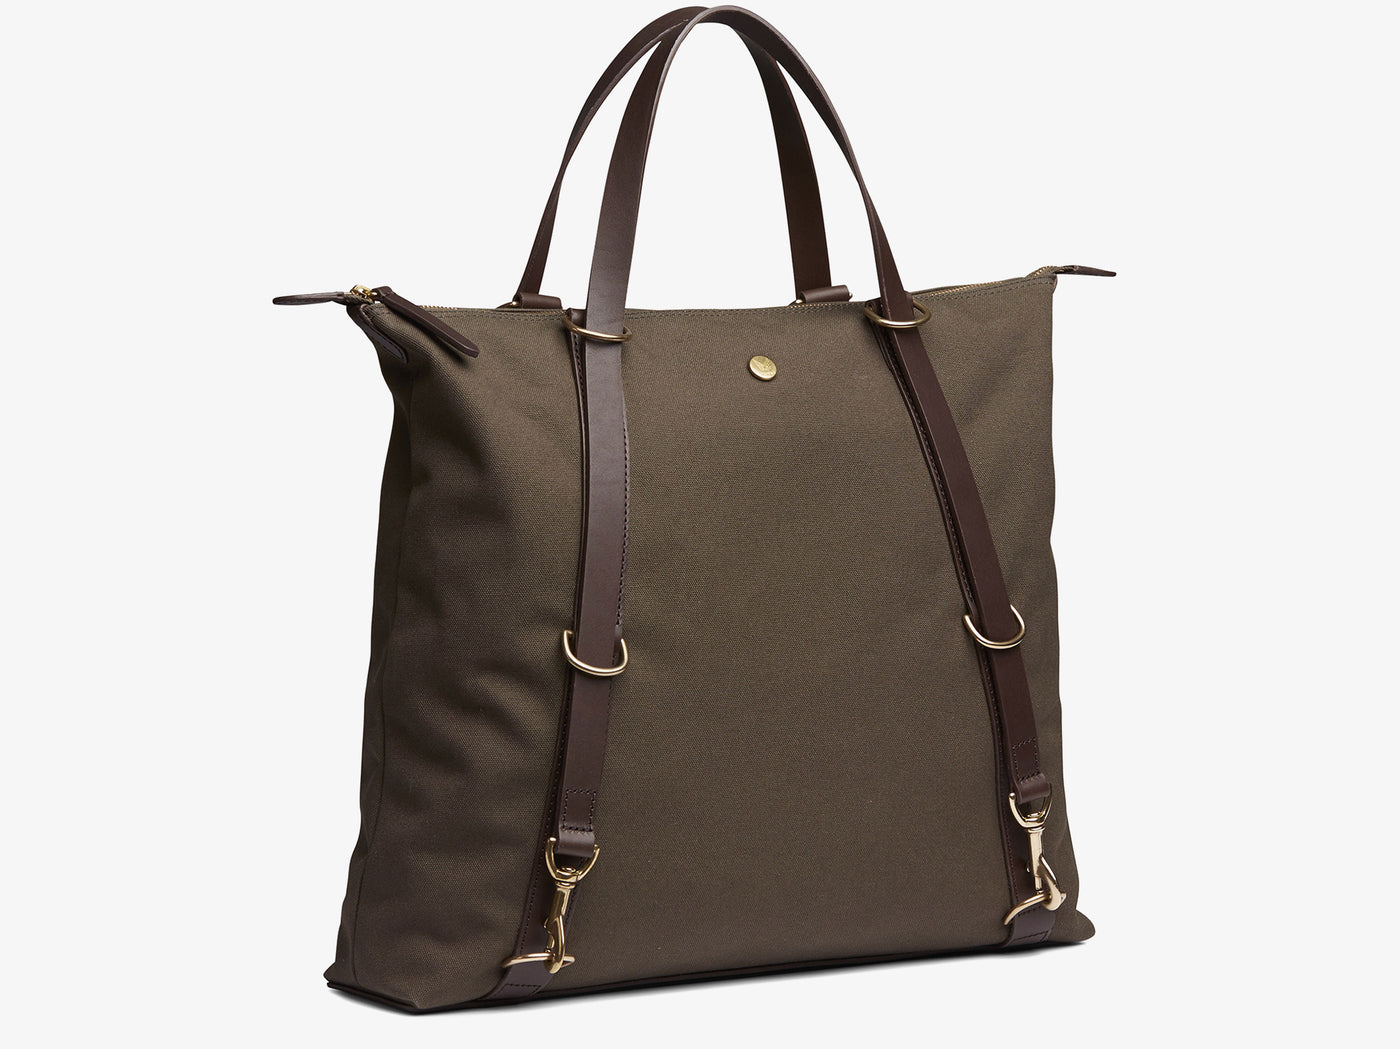 M/S Day Pack – Army/Dark Brown -  Tote bag - Mismo